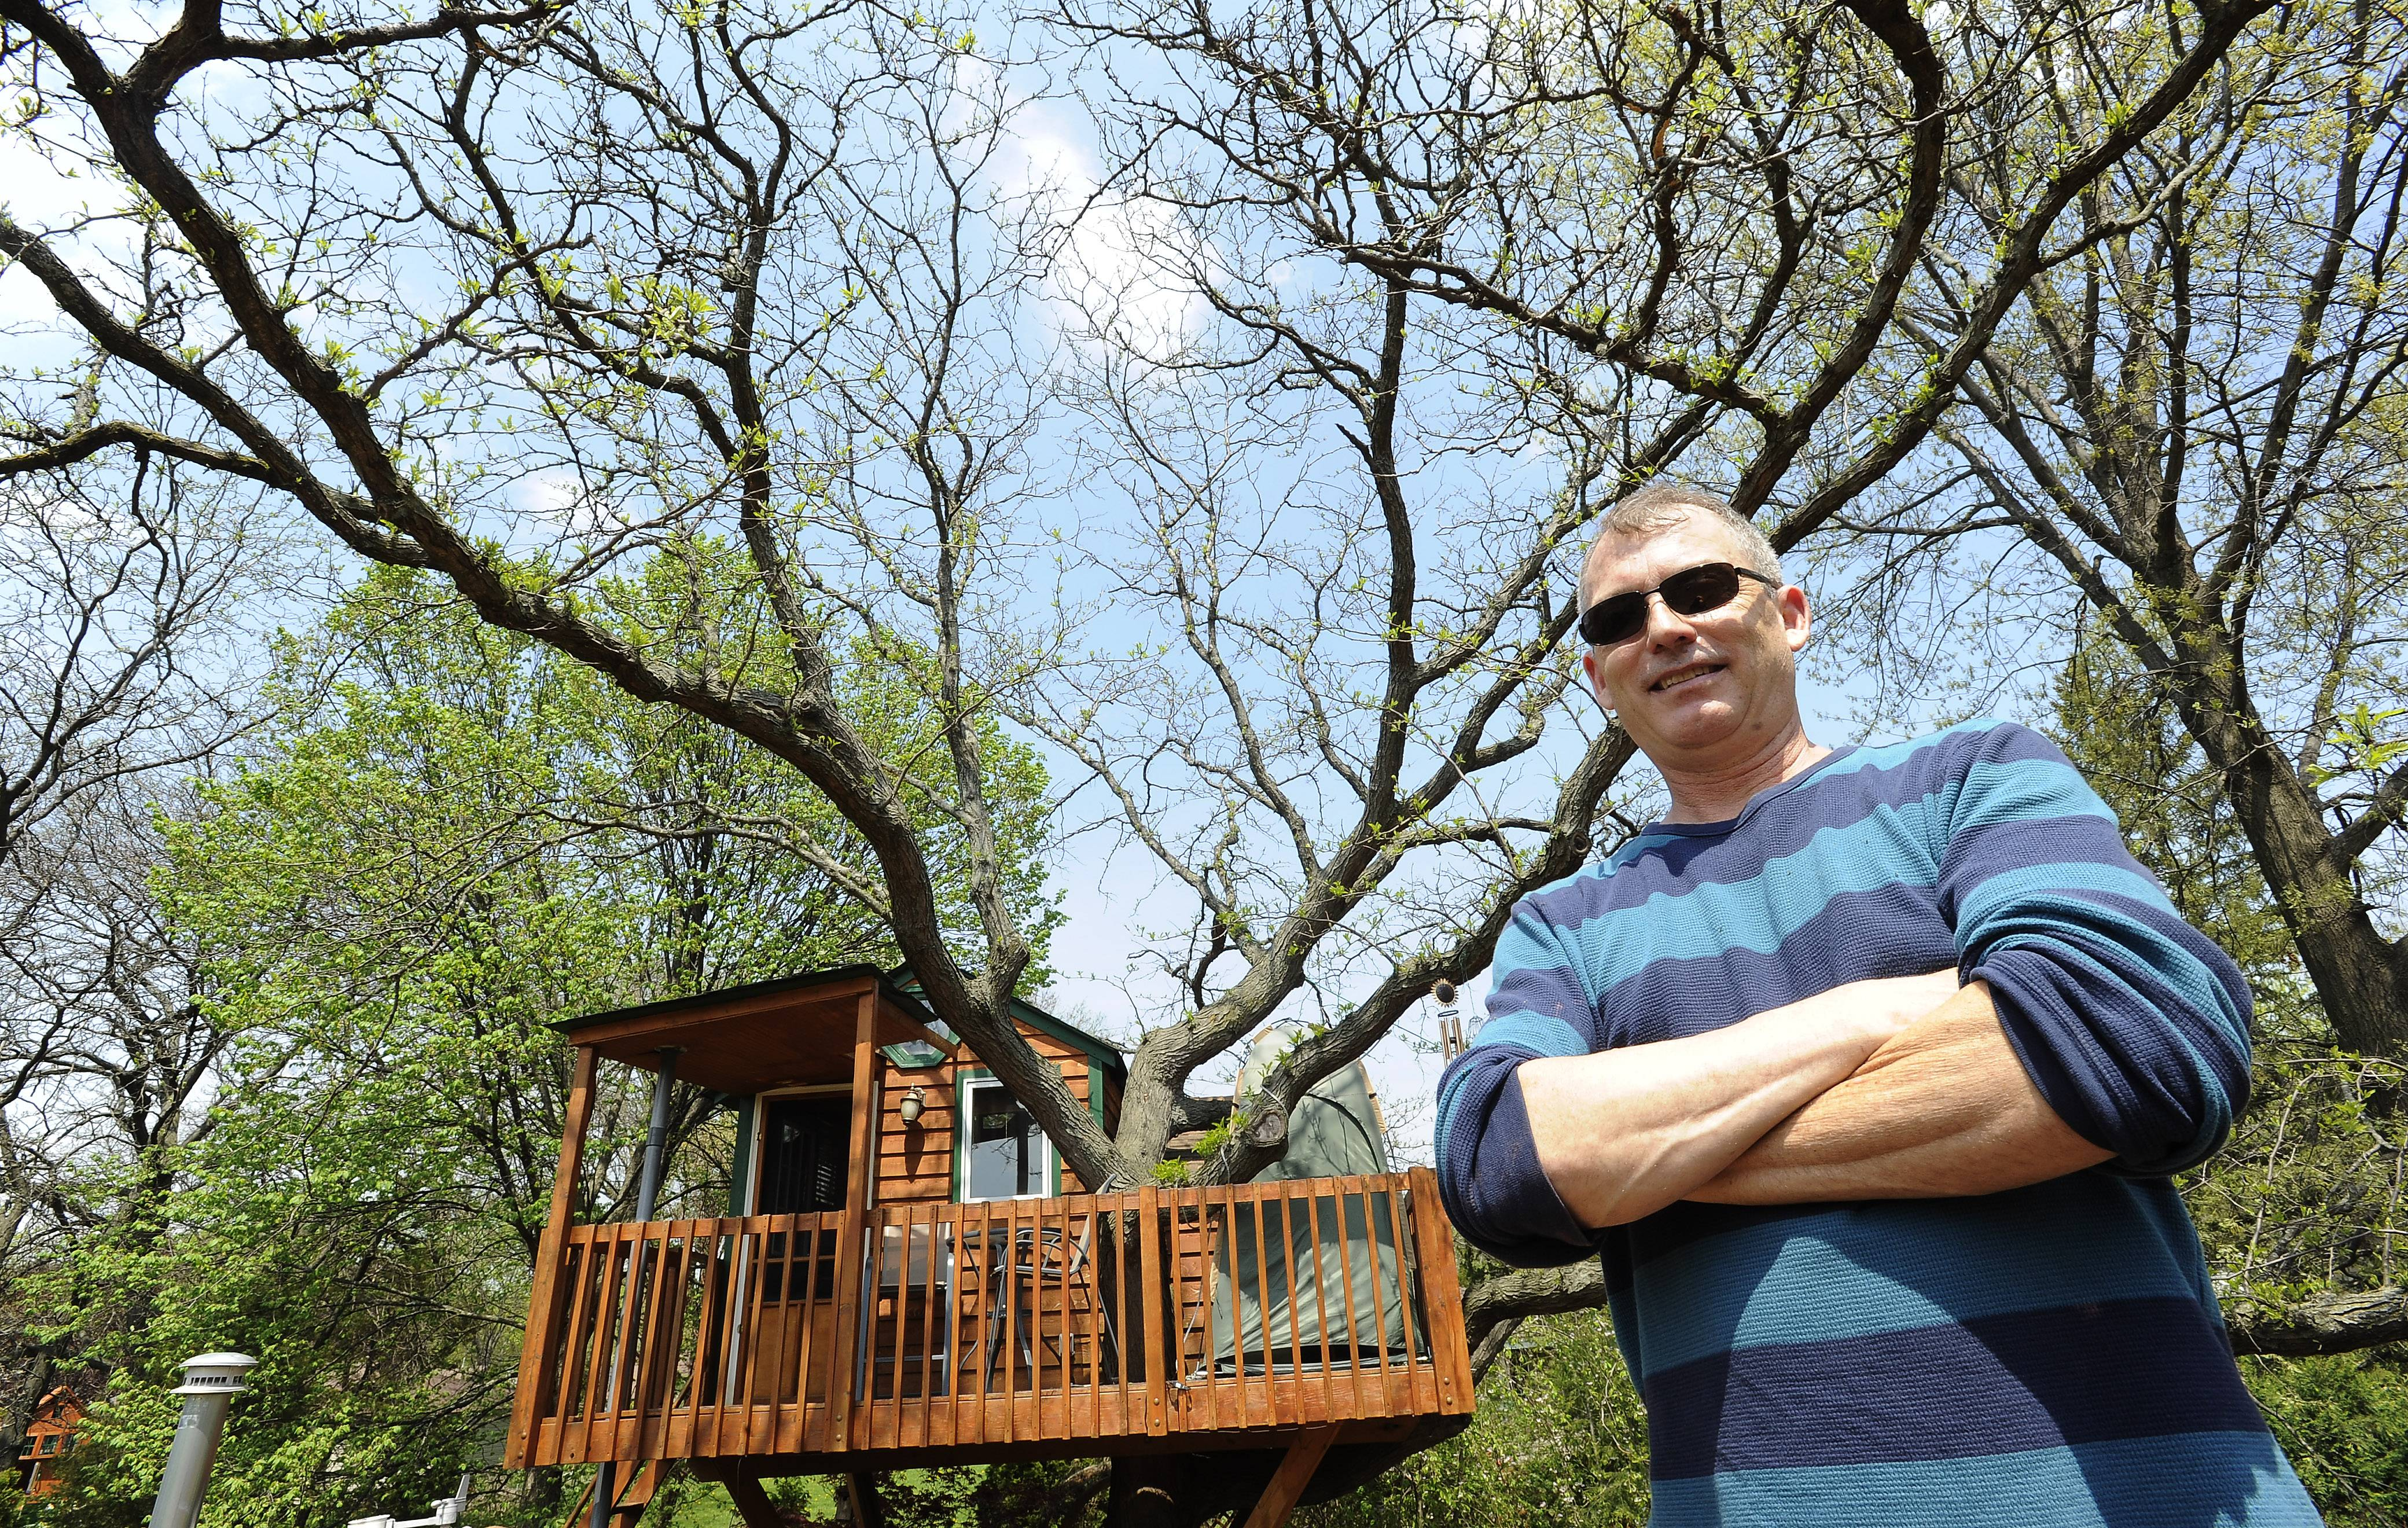 Dan Alexander's 112-square-foot luxury treehouse, seen from the roof of his Schaumburg home, is prompting village officials to seek regulations that would limit the size and scope of future treehouses in town.